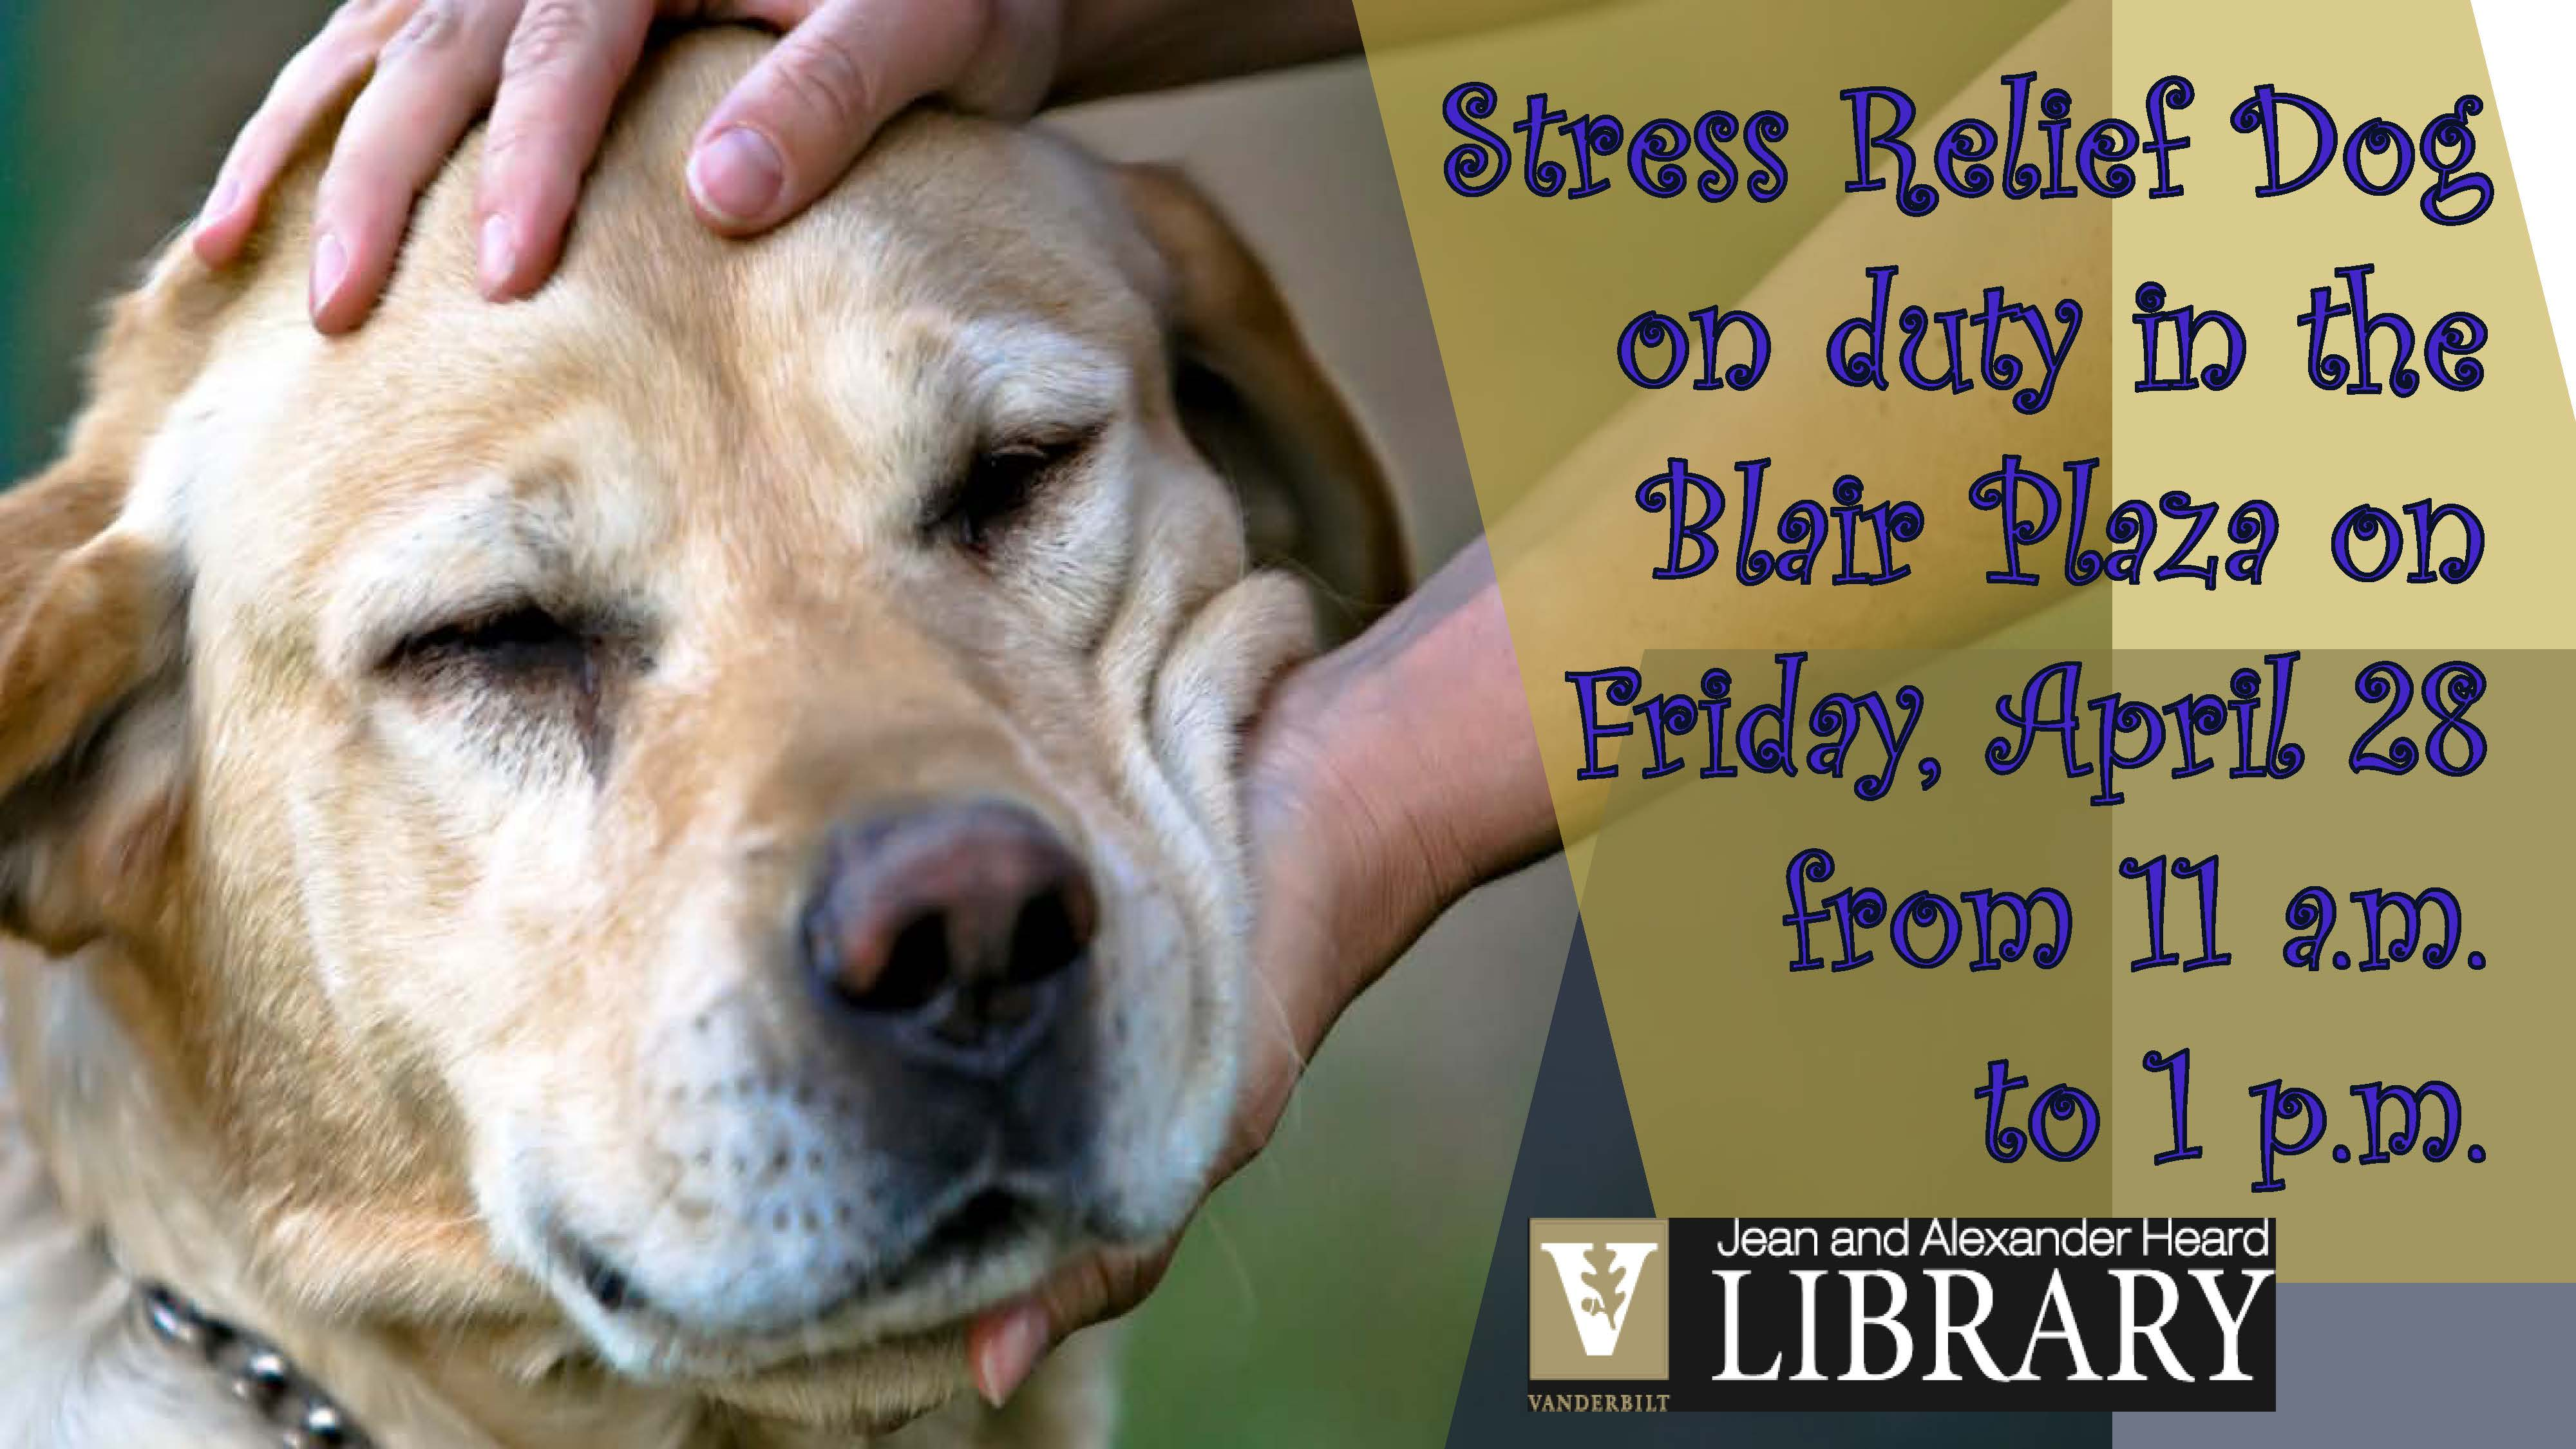 Stress Relief Dog On Duty!